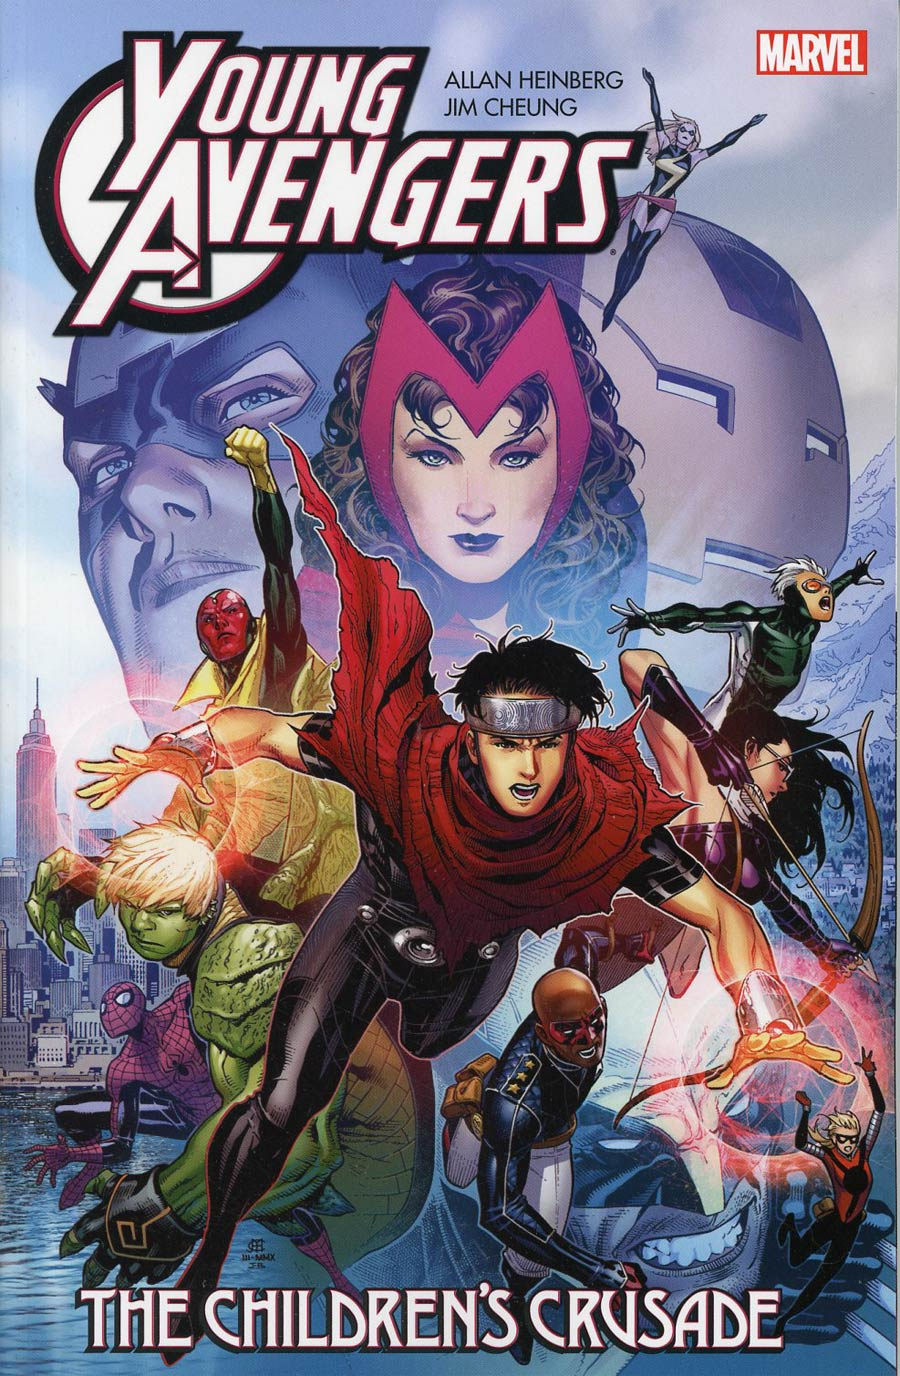 Young Avengers By Allan Heinberg & Jim Cheung Childrens Crusade TP